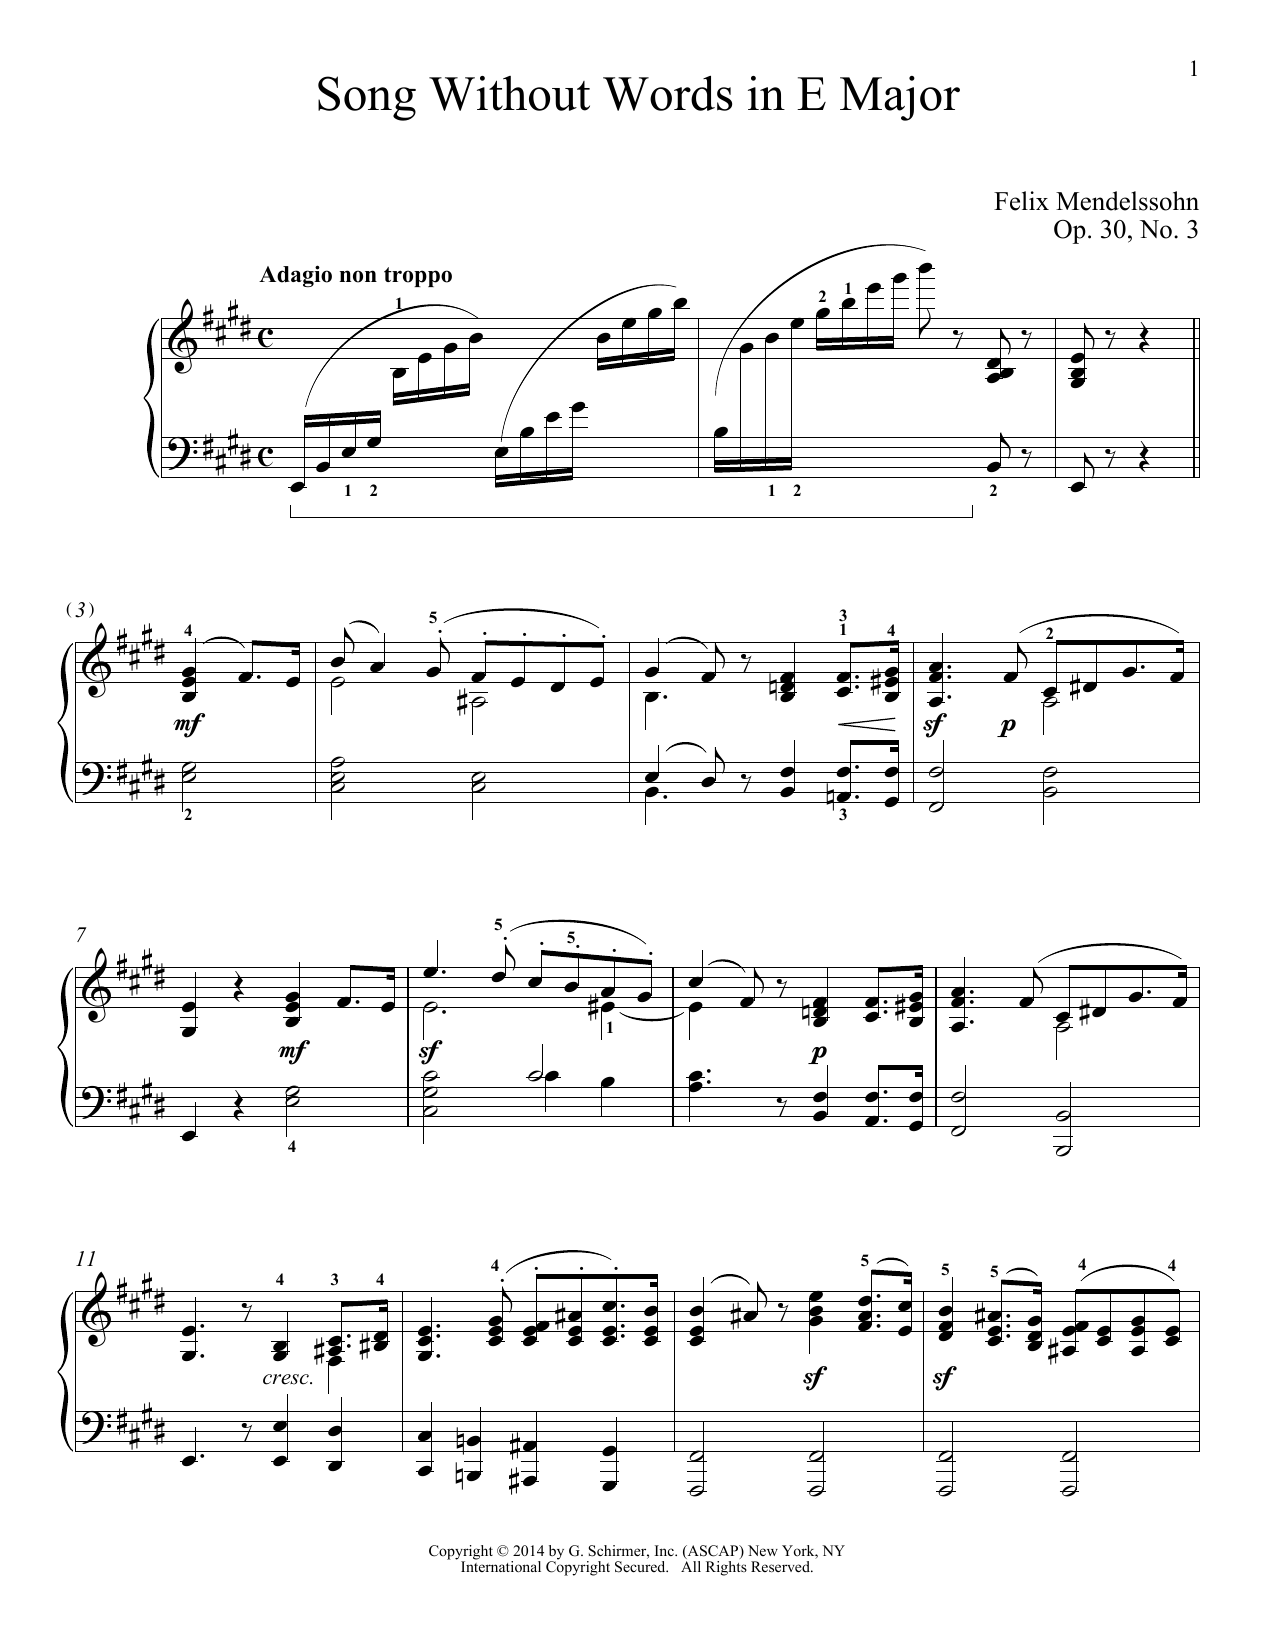 Immanuela Gruenberg Song Without Words In E Major, Op. 30, No. 3 sheet music notes and chords. Download Printable PDF.